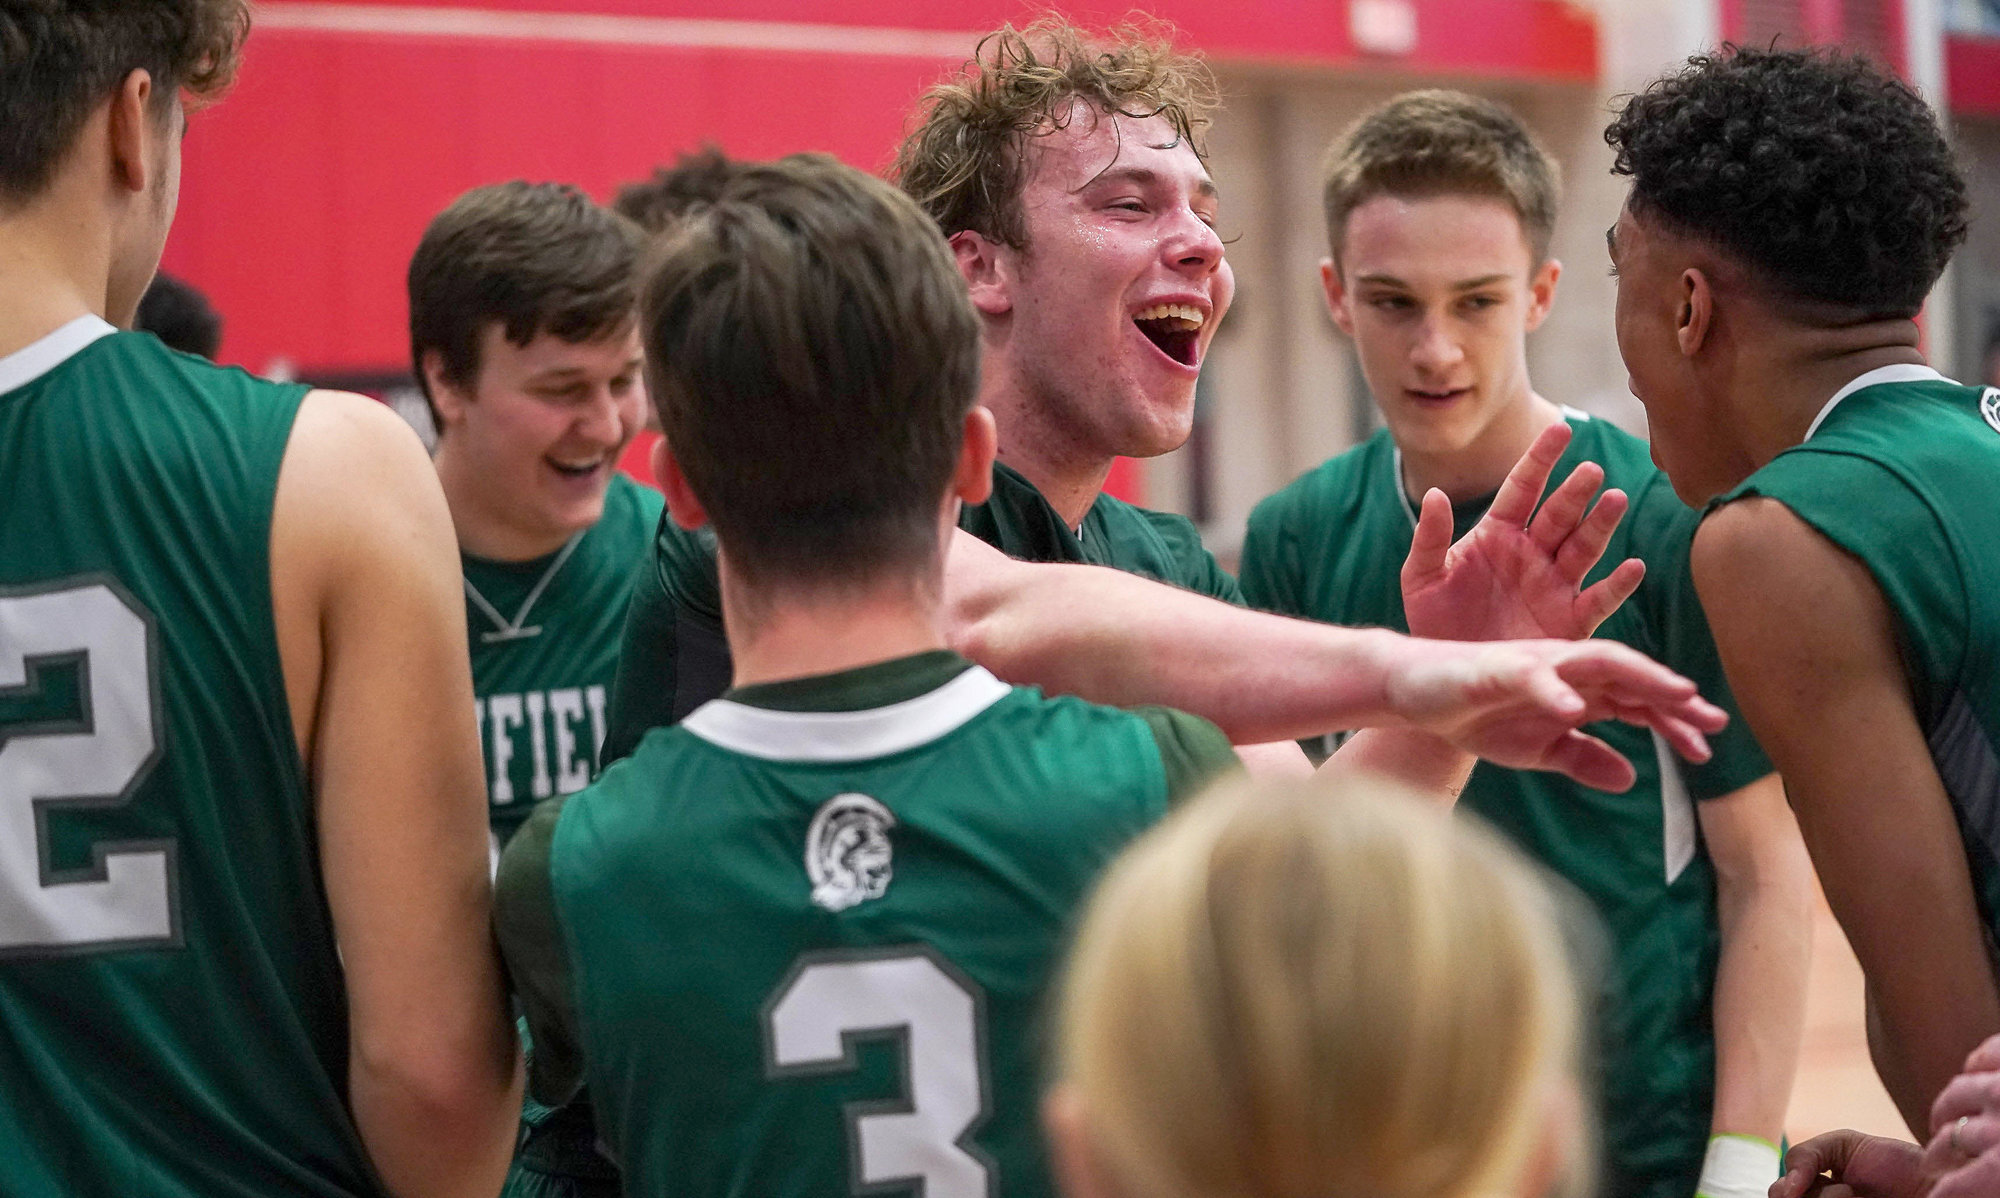 Josh Wood (center) and teammates celebrate Newfield's 63-60 victory over Watkins Glen in the Section IV Championship game. It is the Trojans' third Section IV title in four years.